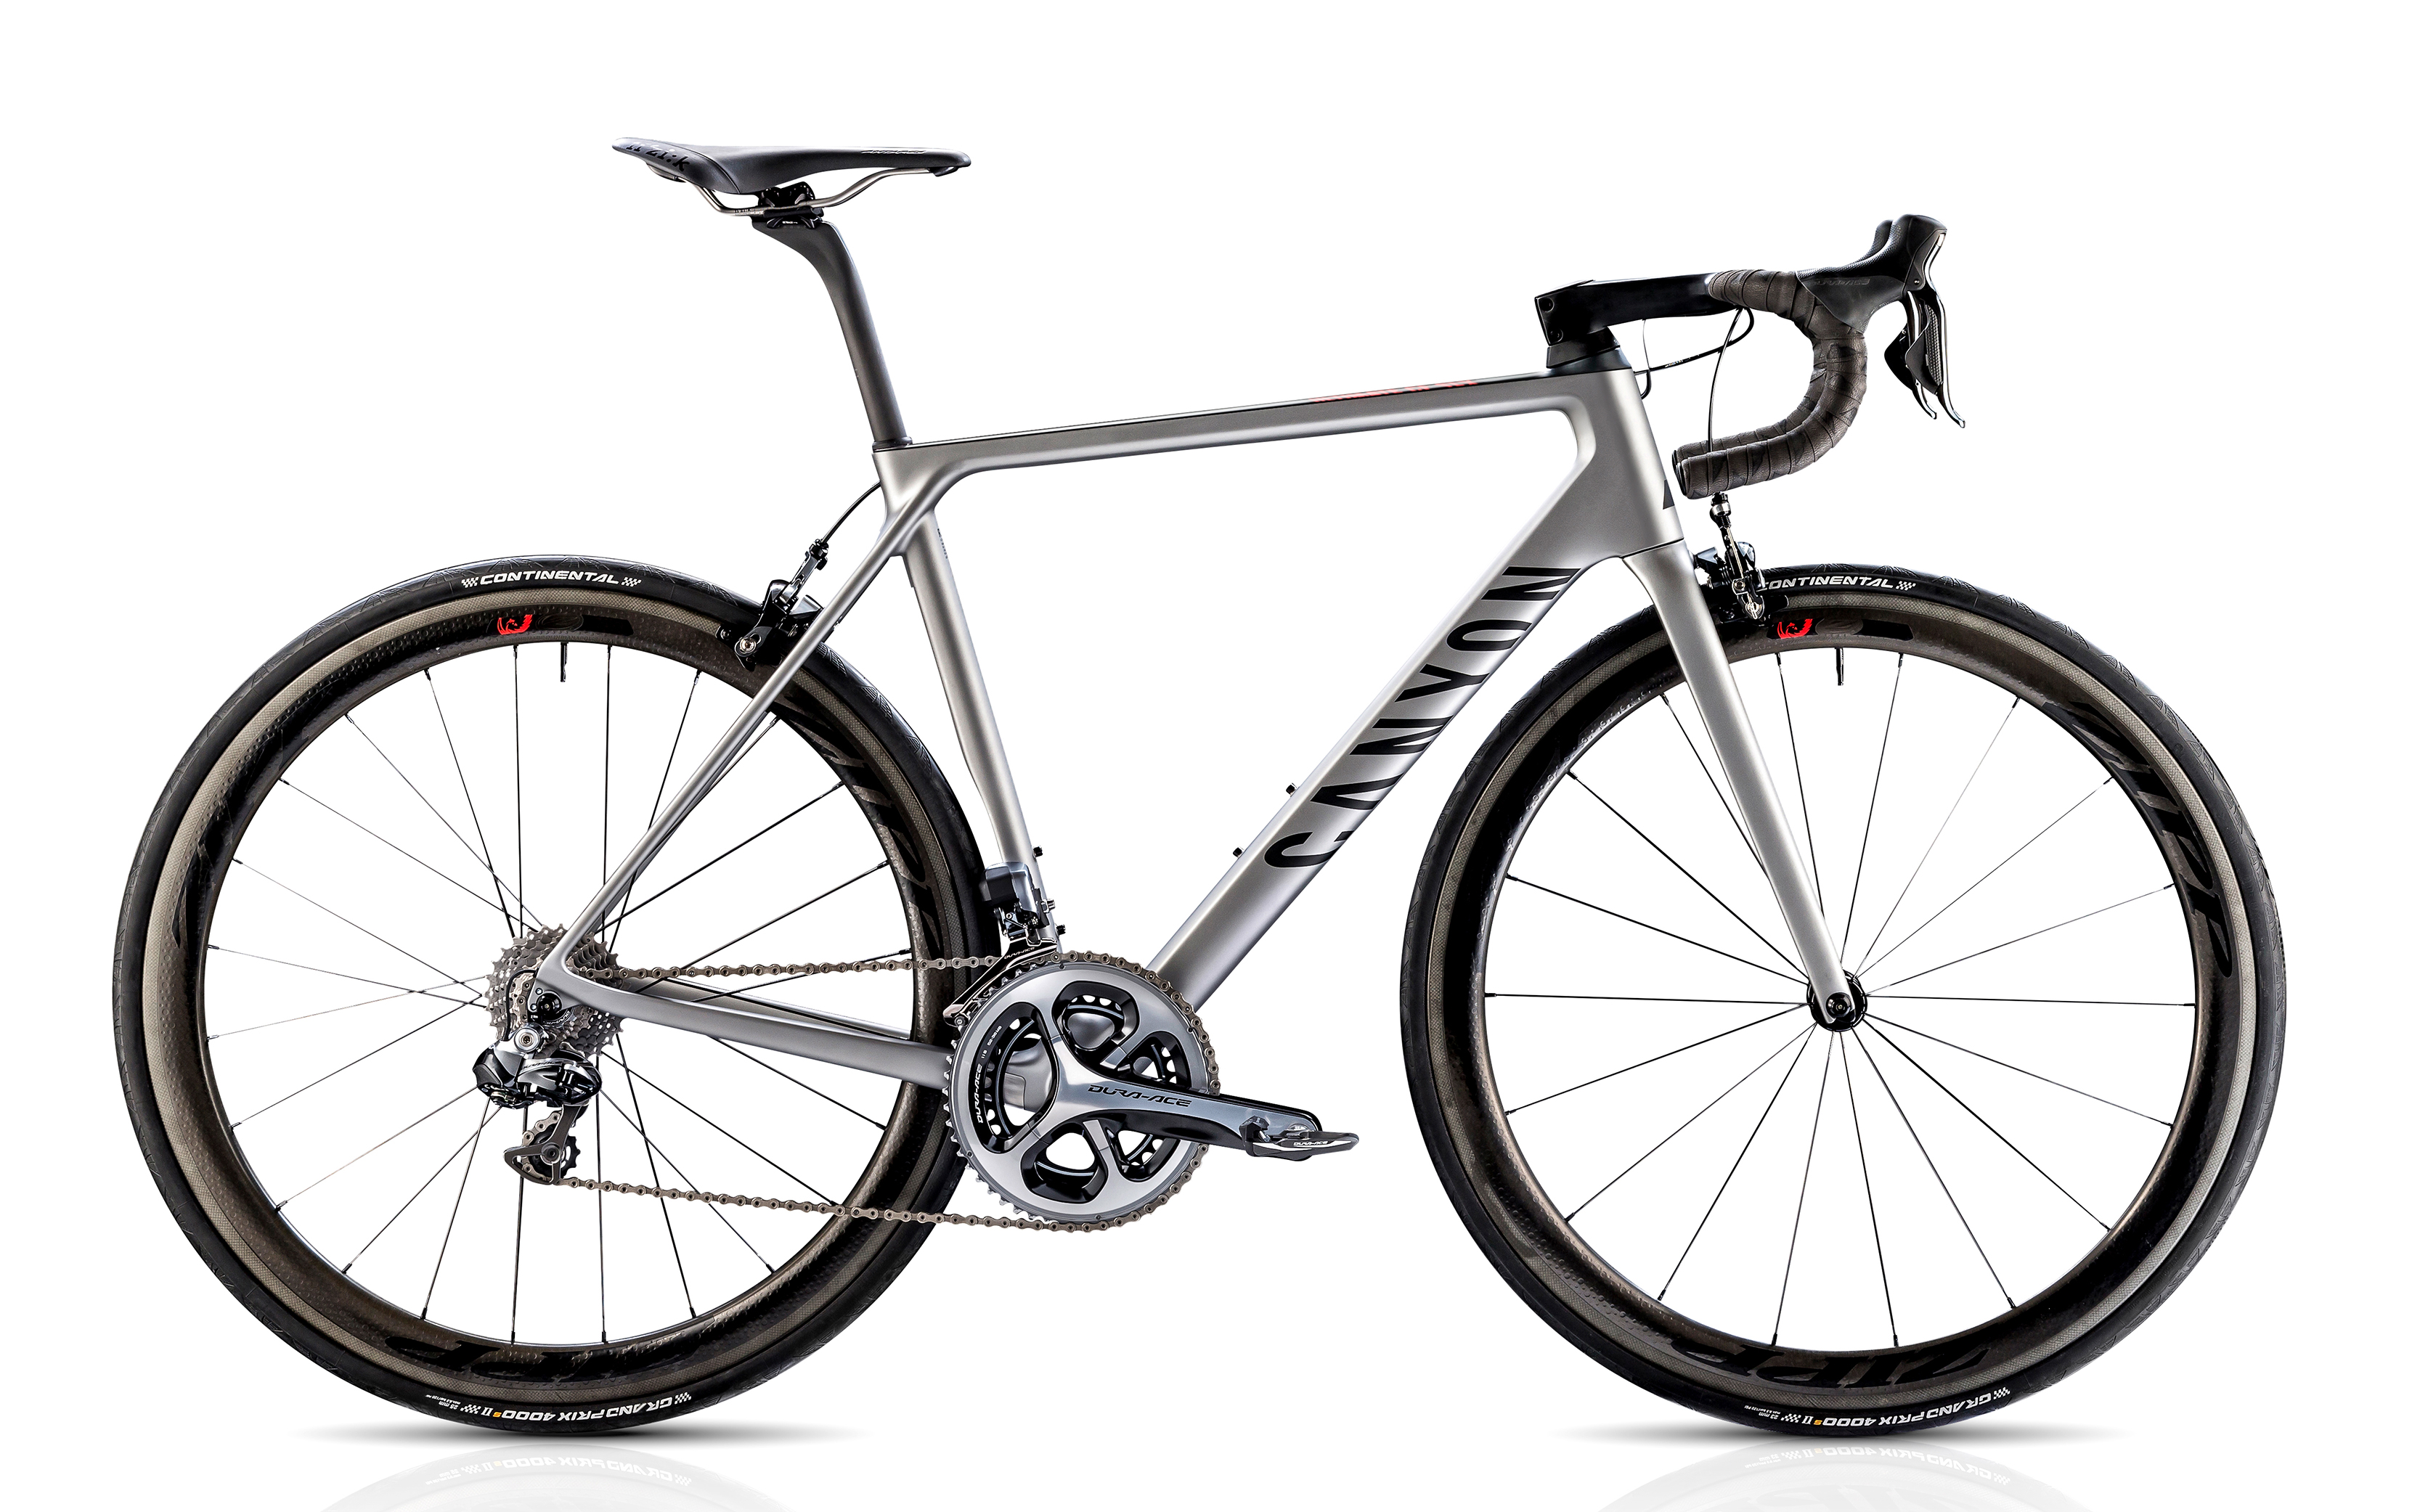 ENGINEERED PERFECTION: THE ALLNEW CANYON ULTIMATE CF SLX